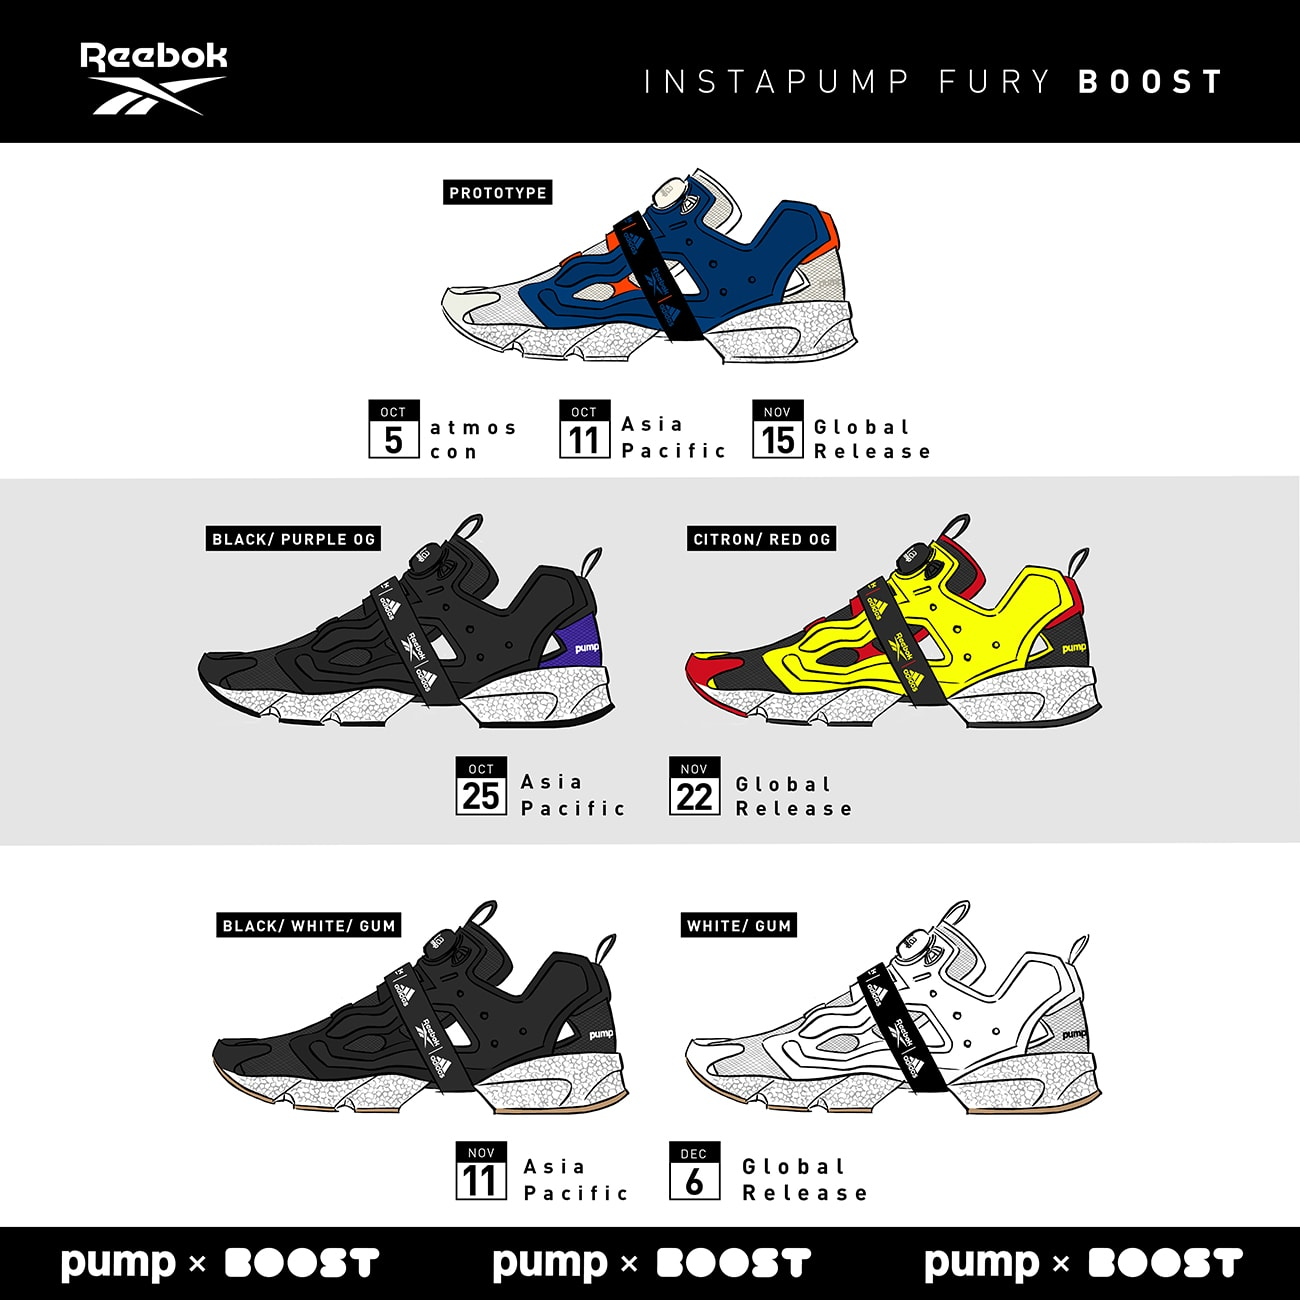 Reebok Instapump Fury BOOST Makes History